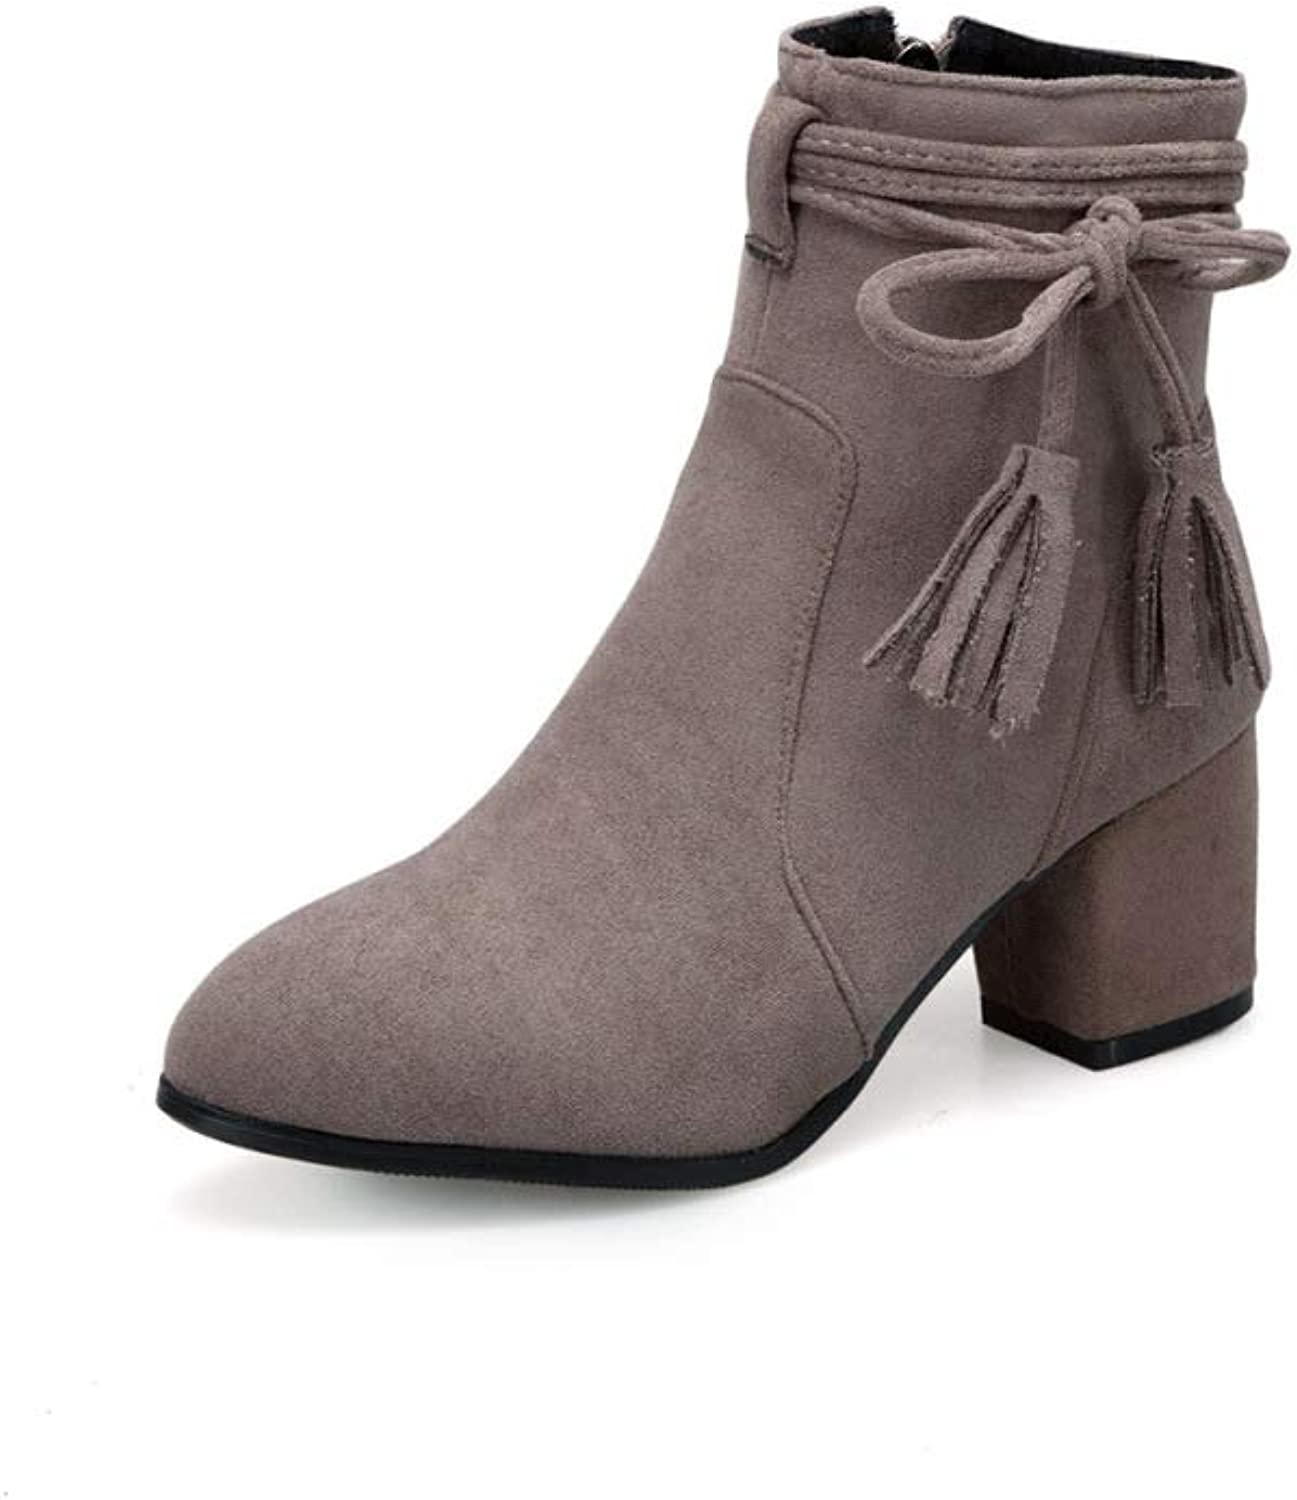 Women Simple Suede Ankle Boots 2018 Autumn Heeled Low Boots Large Size 3246